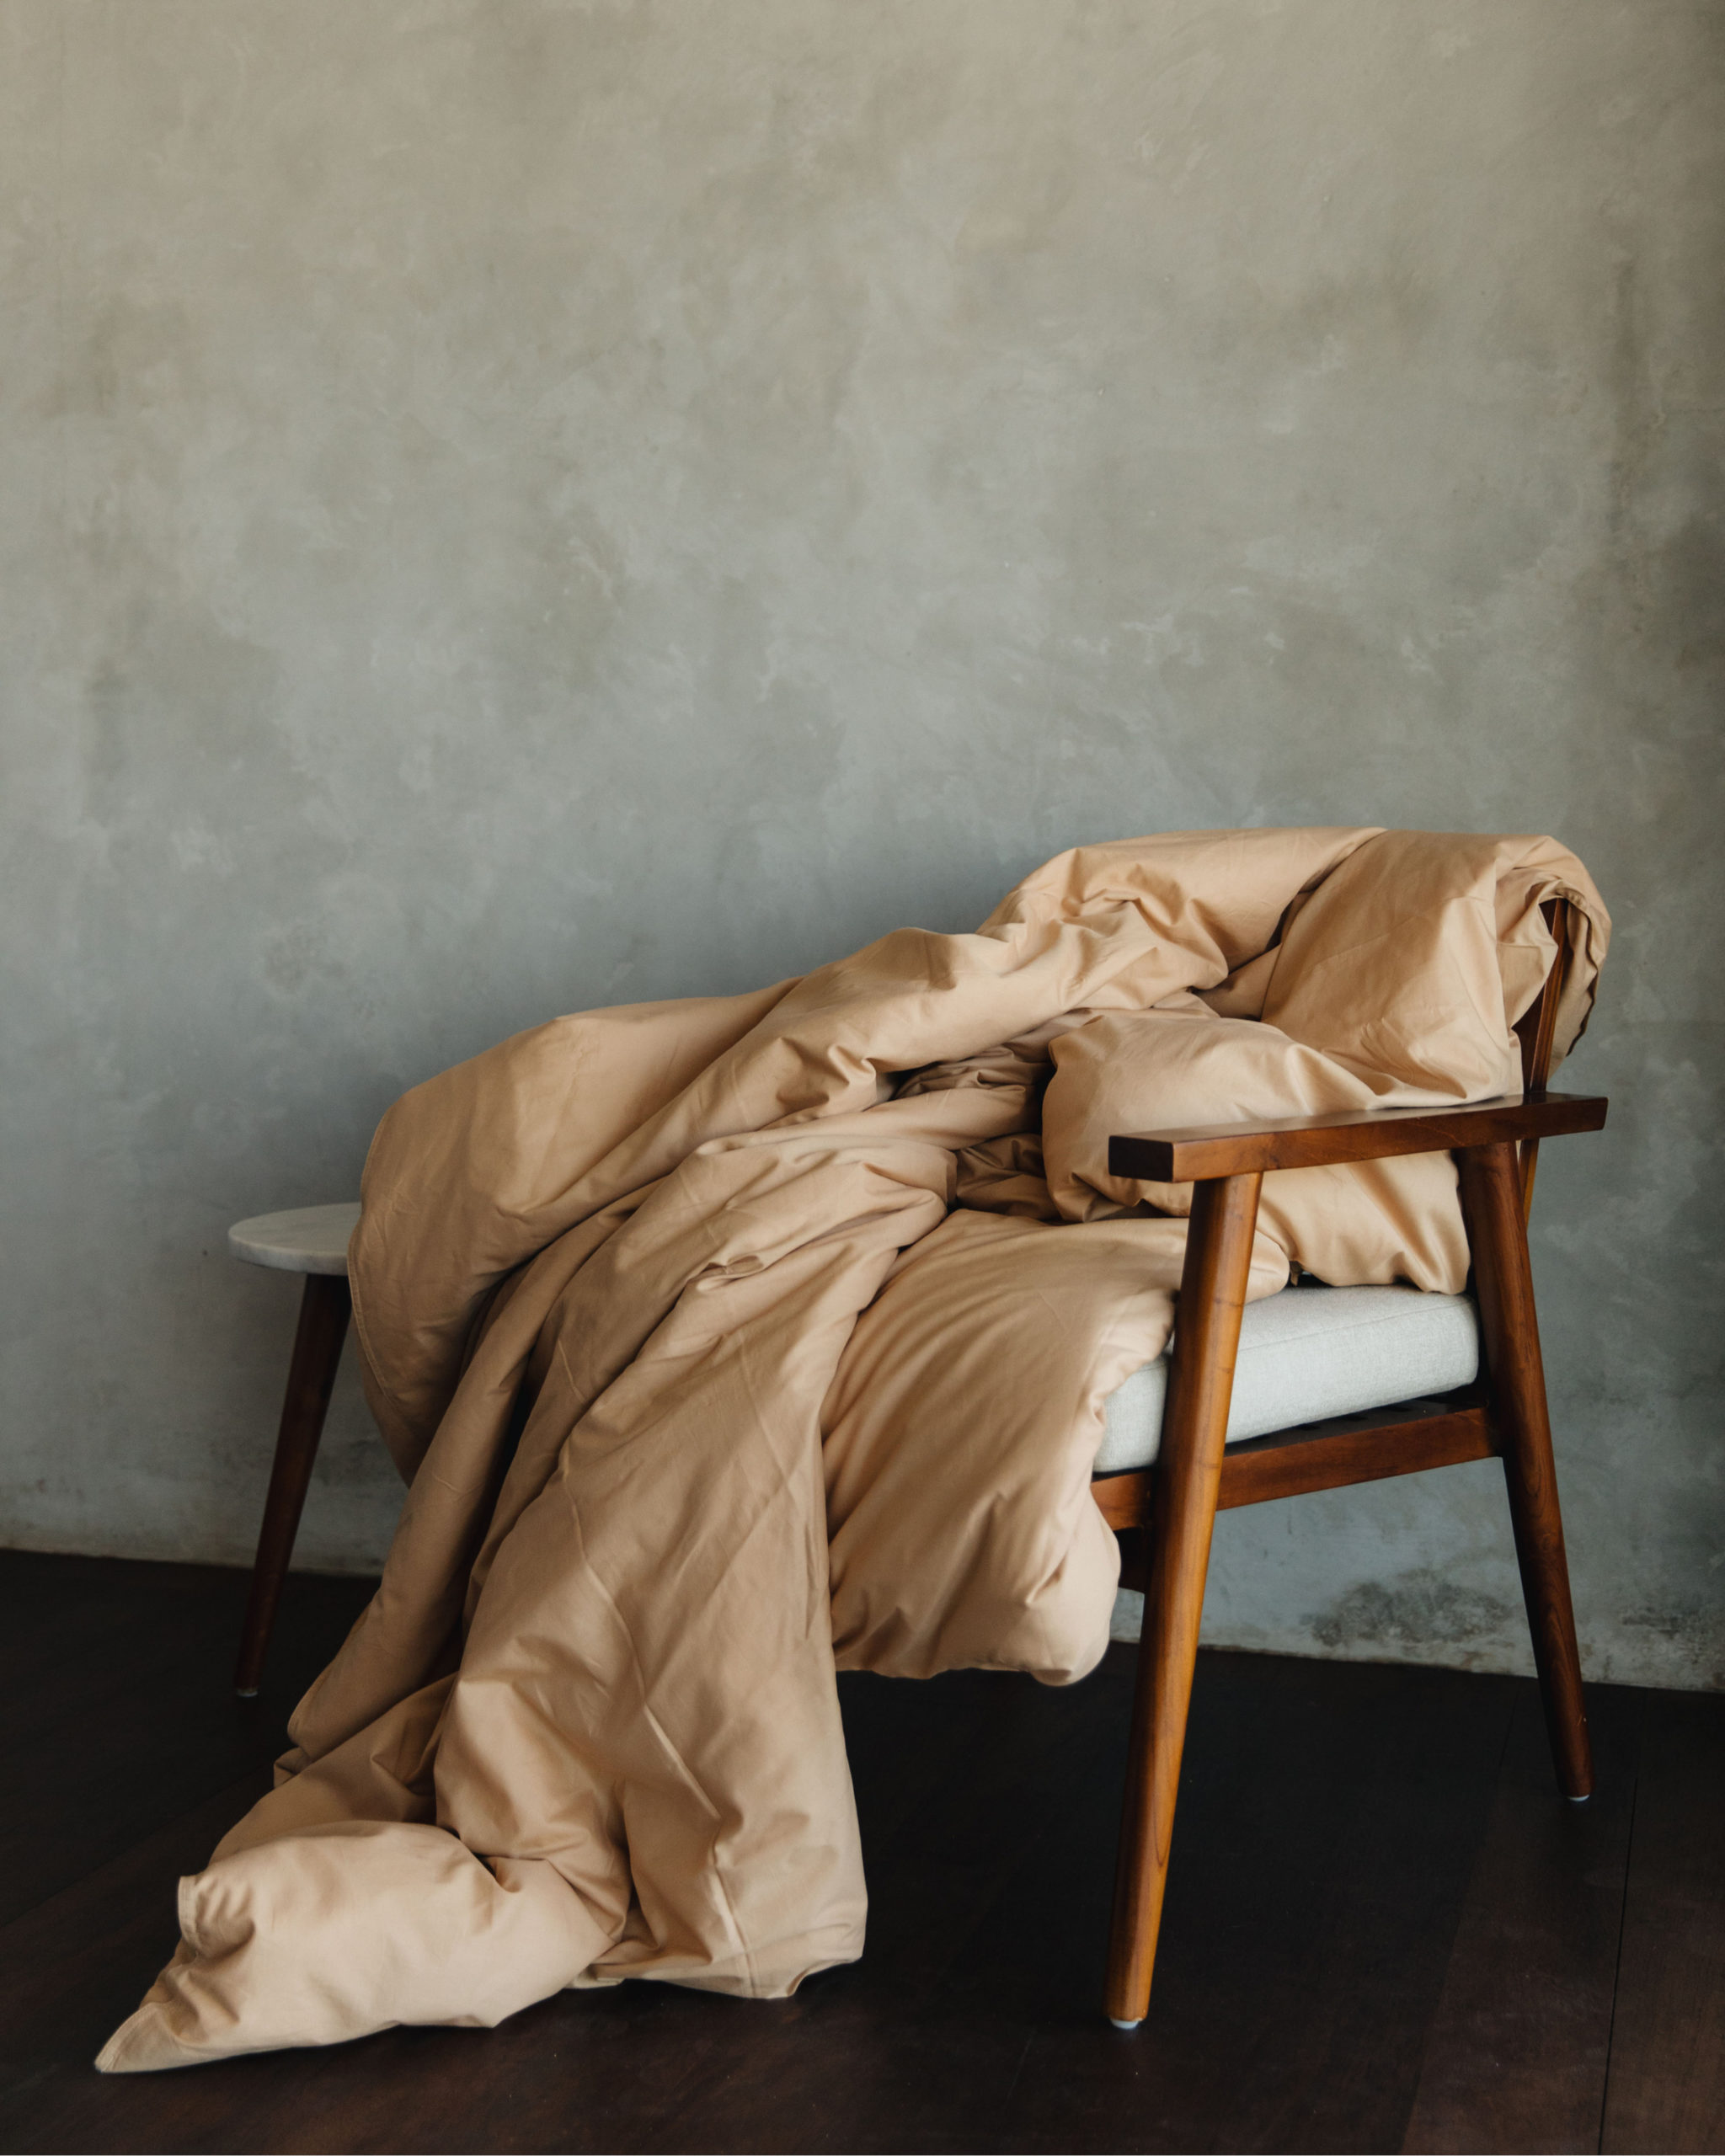 wooden chair covered by beige blanket